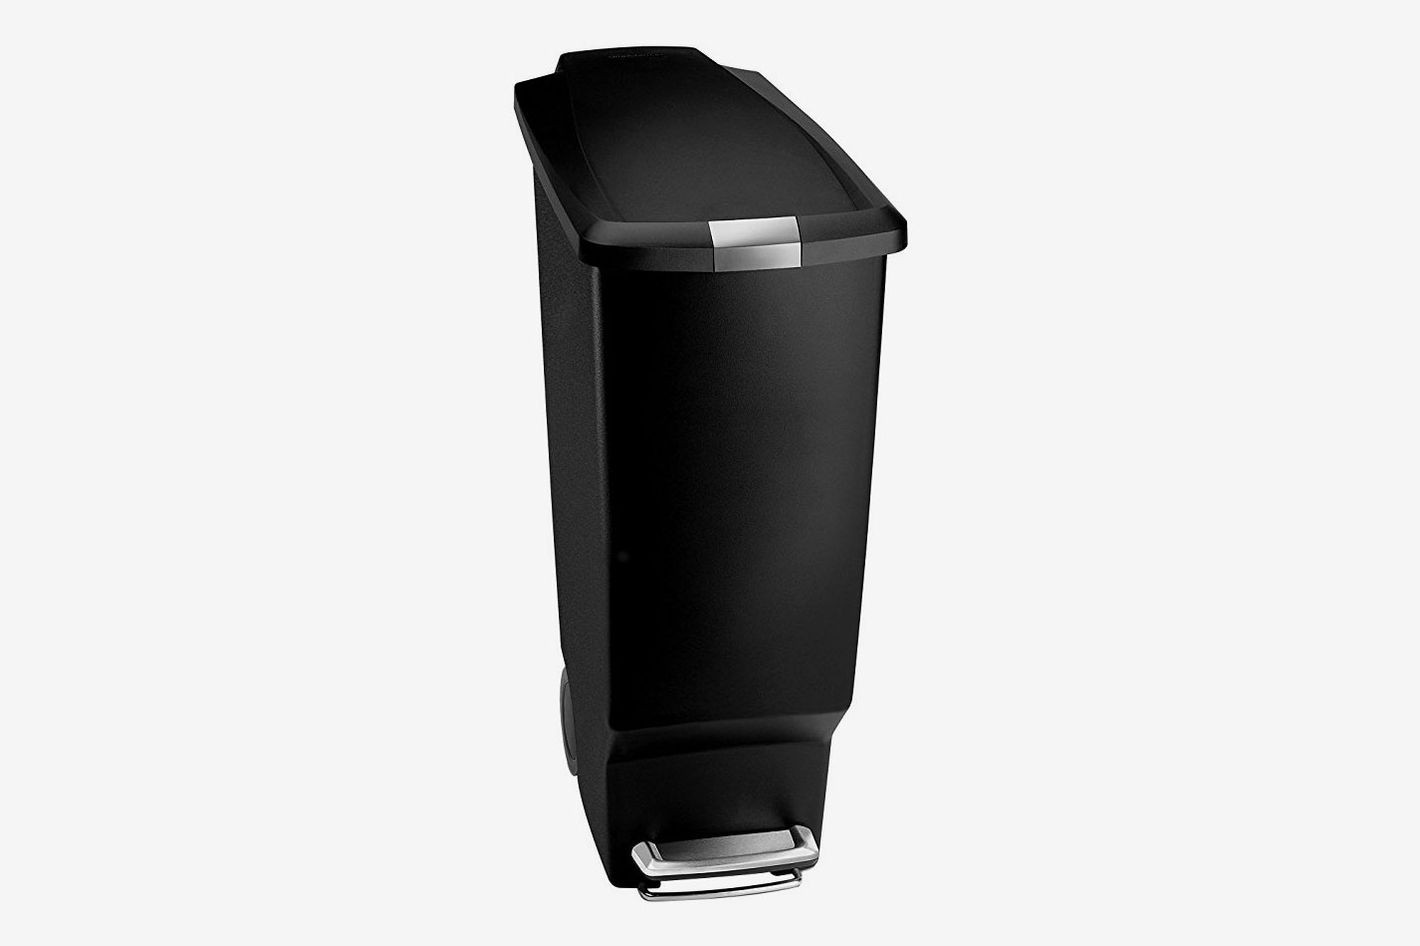 Charmant Simplehuman 40 Liter / 10.6 Gallon Slim Kitchen Step Trash Can, Black  Plastic With Secure